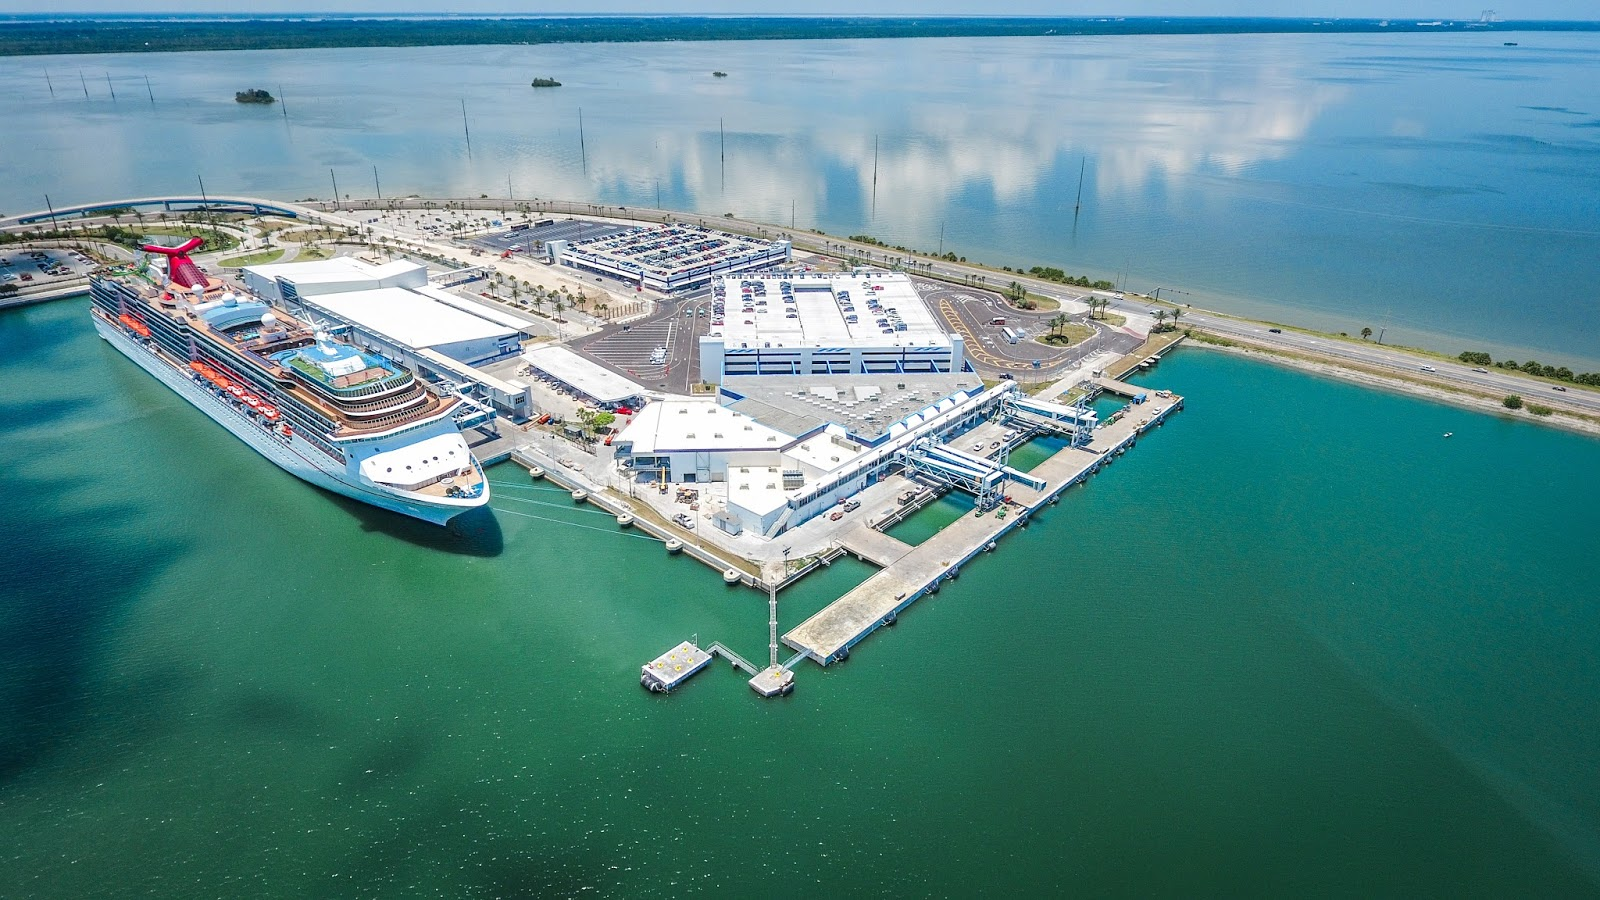 Cruise Diva Port Canaveral Cruise Terminal Brand New Again - Cruises from port canaveral